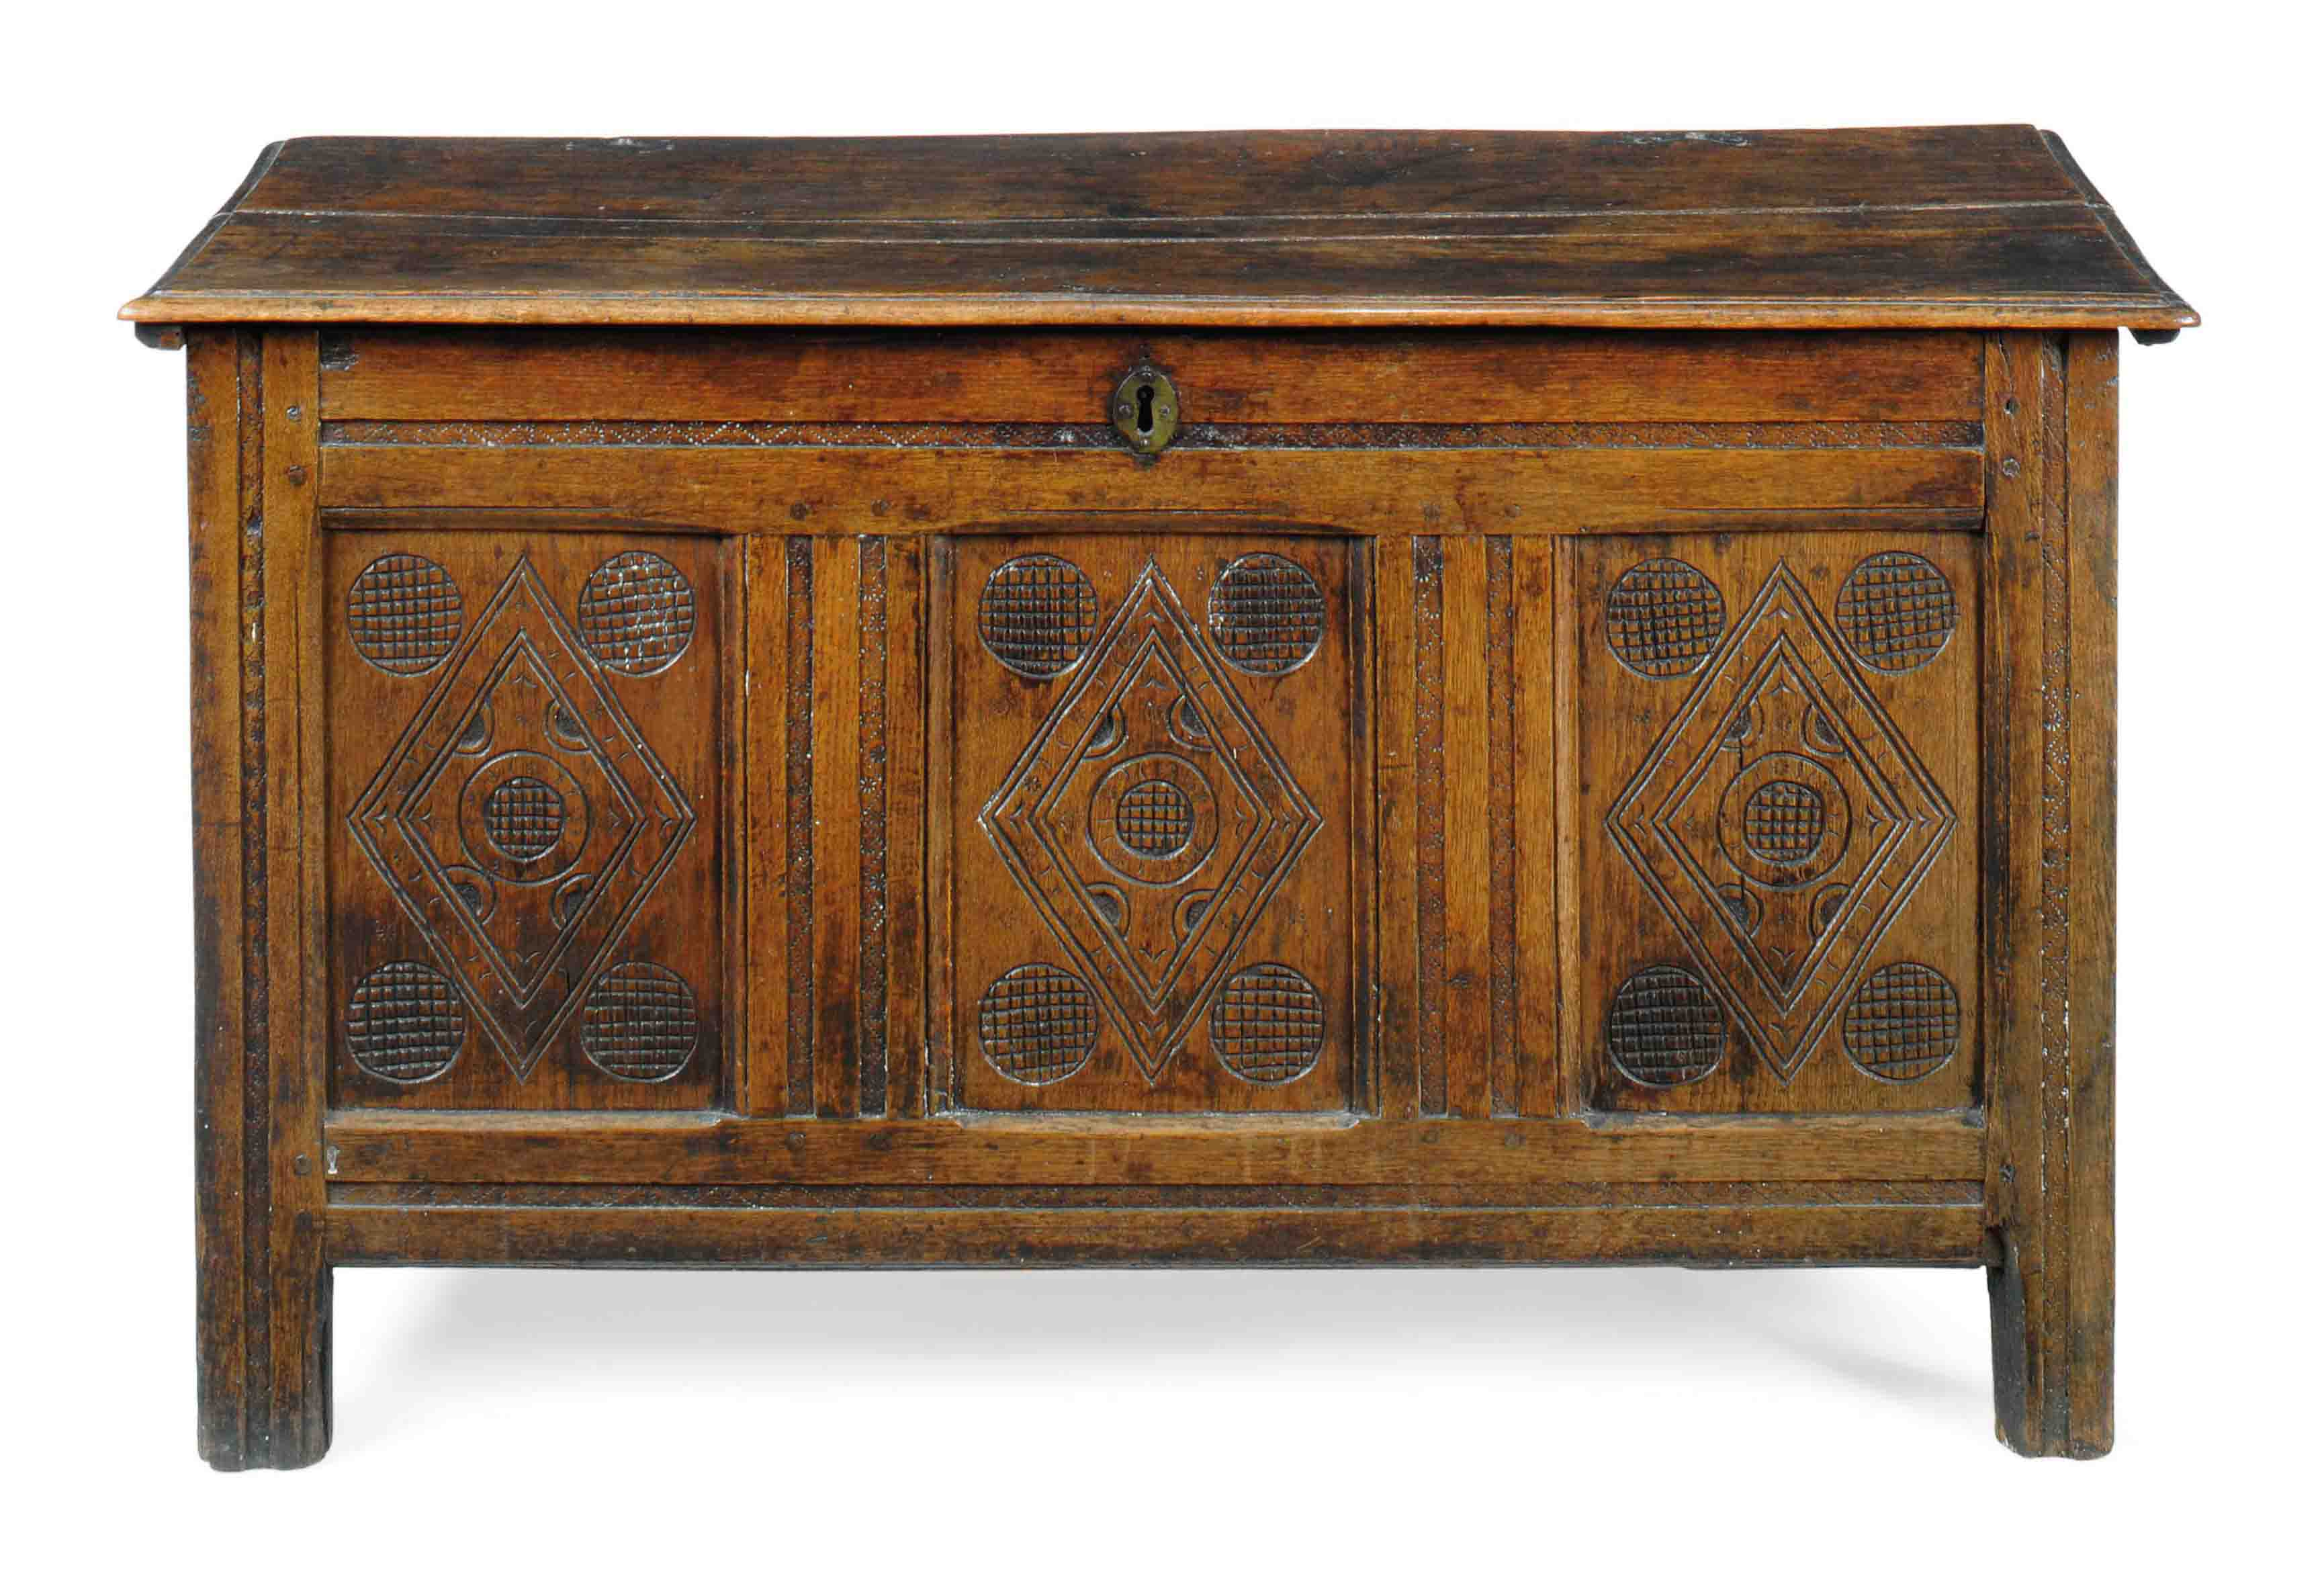 AN ENGLISH CARVED OAK COFFER